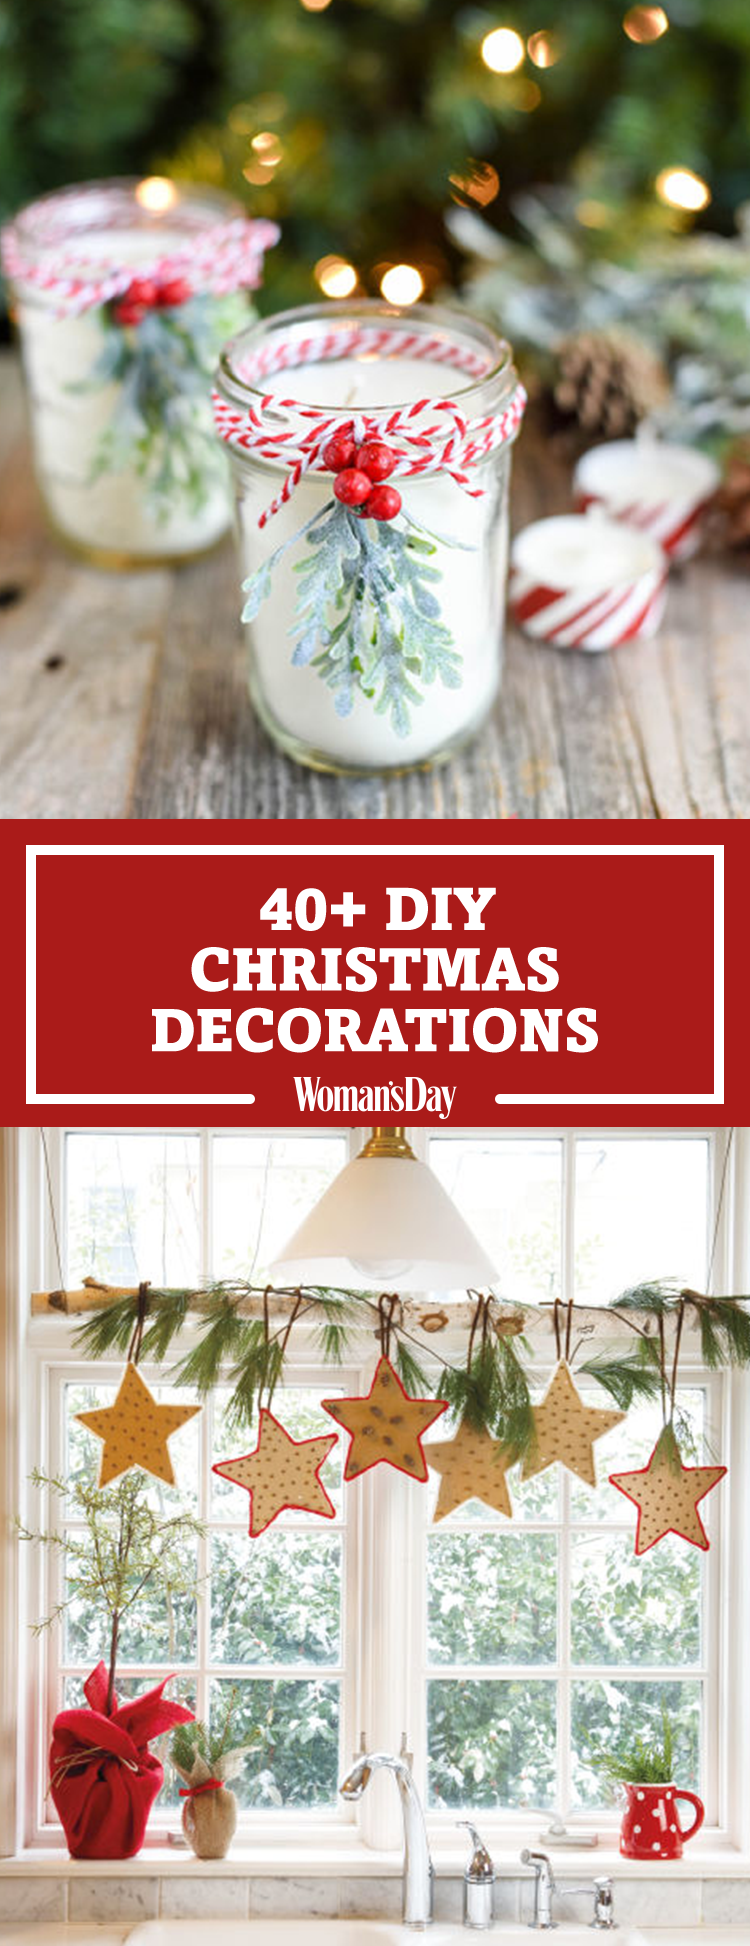 diy christmas decor 47 easy diy decorations ideas for 436